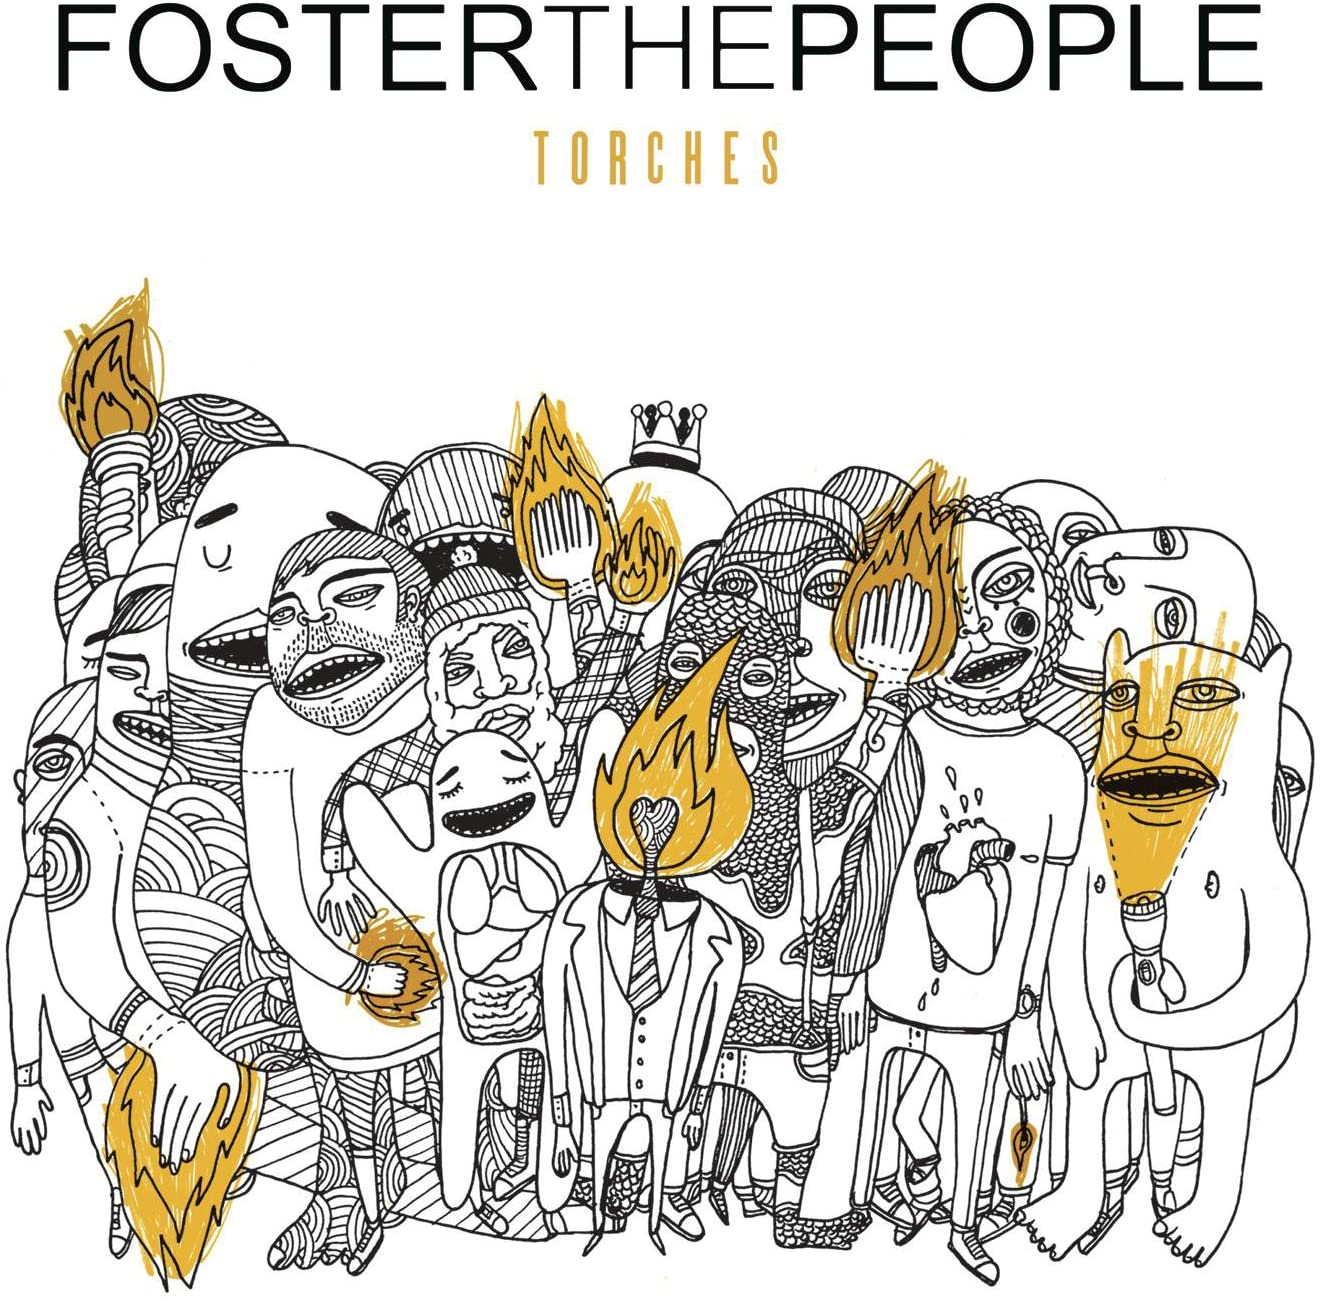 Foster the People – Torches